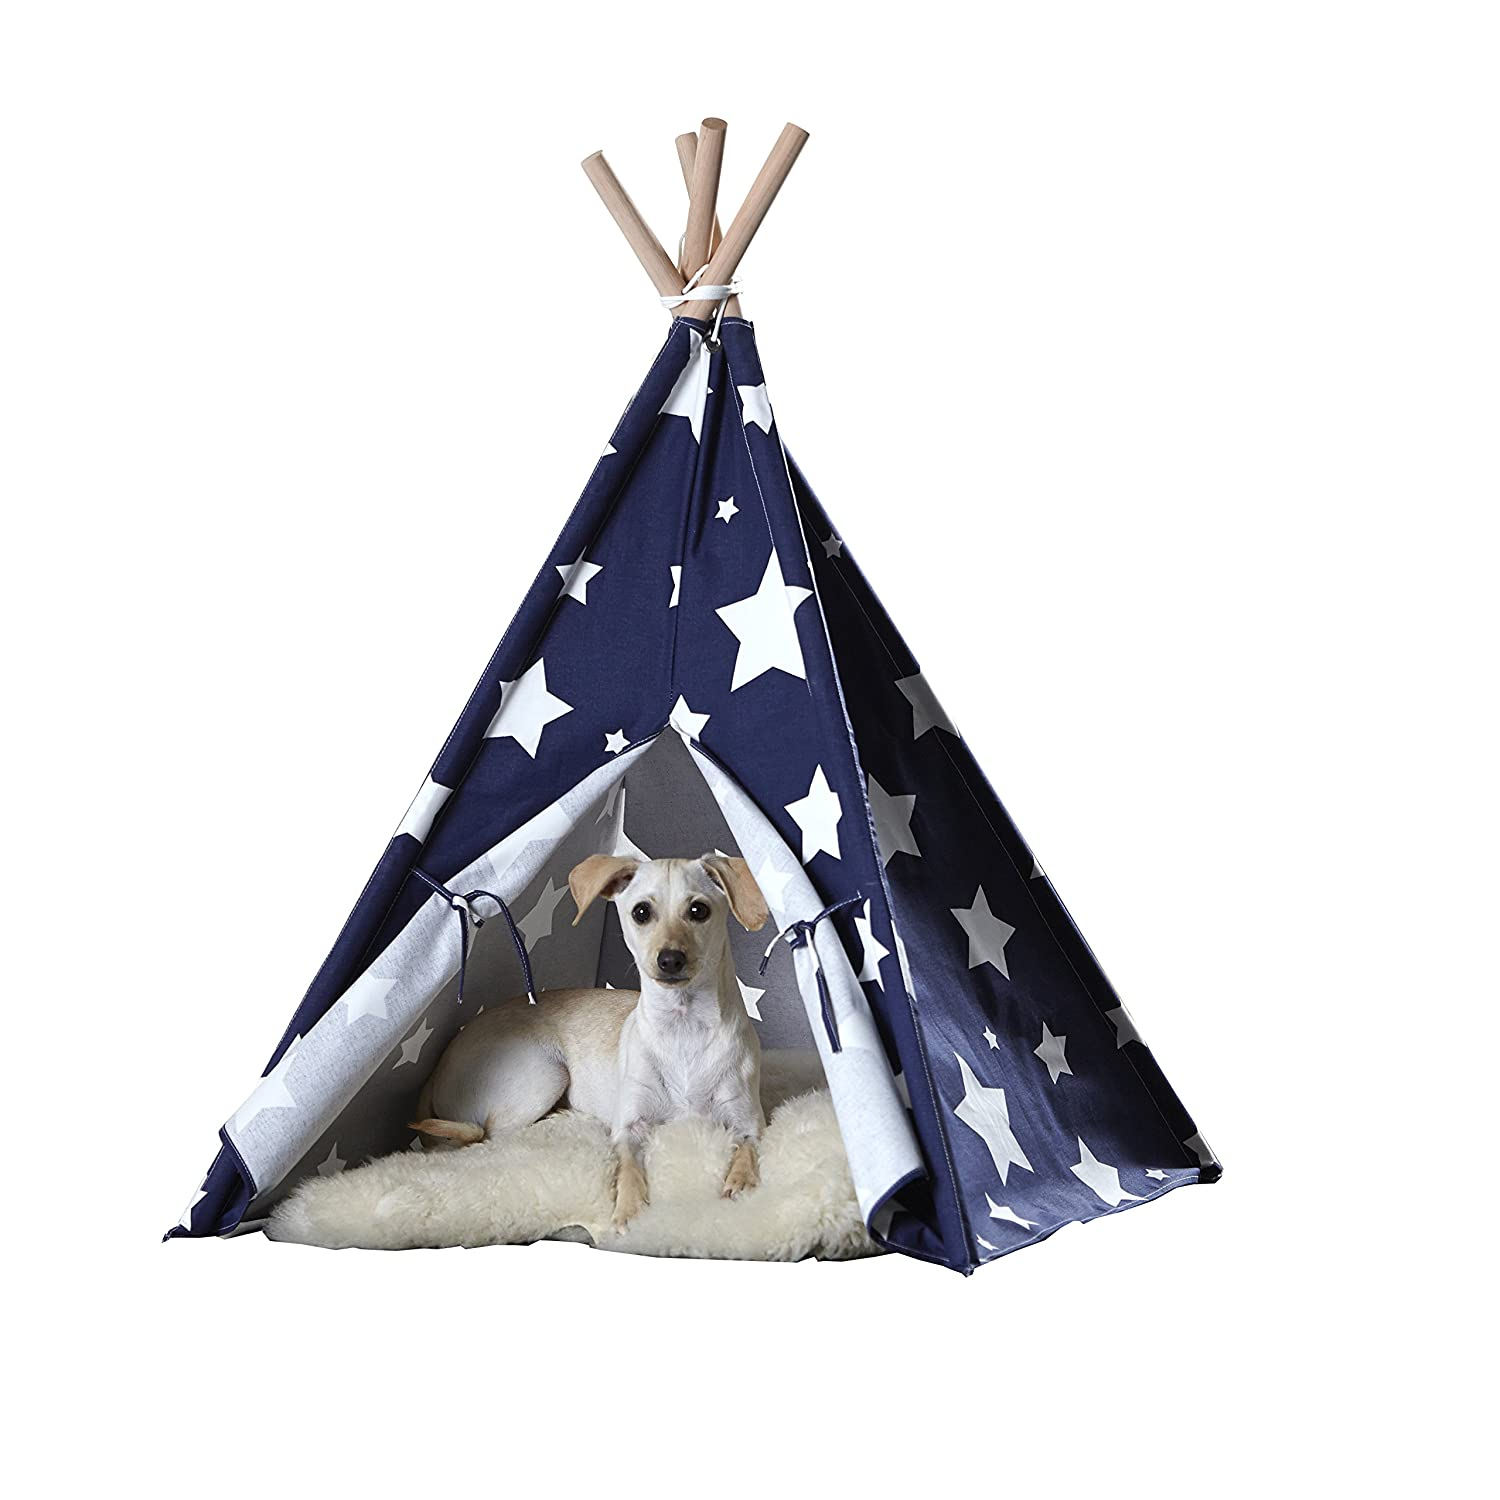 Amazon zoovilla Blue with White Stars Pet Teepee Pet